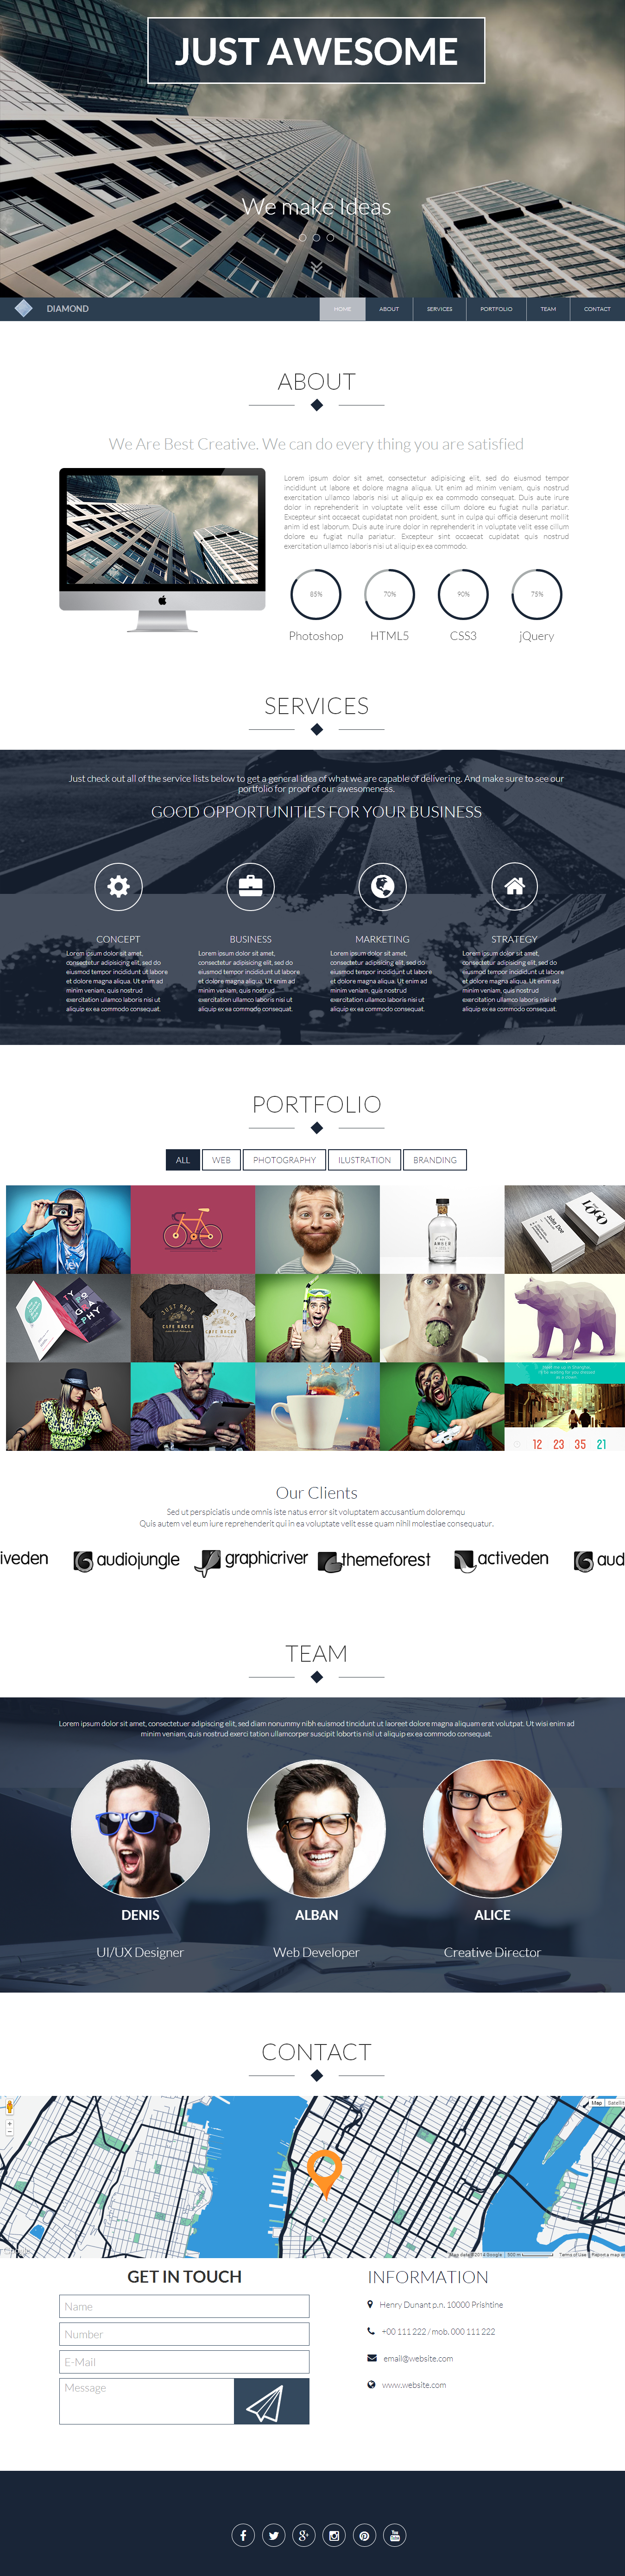 Diamond - OnePage Responsive HTML Template Screenshot 1